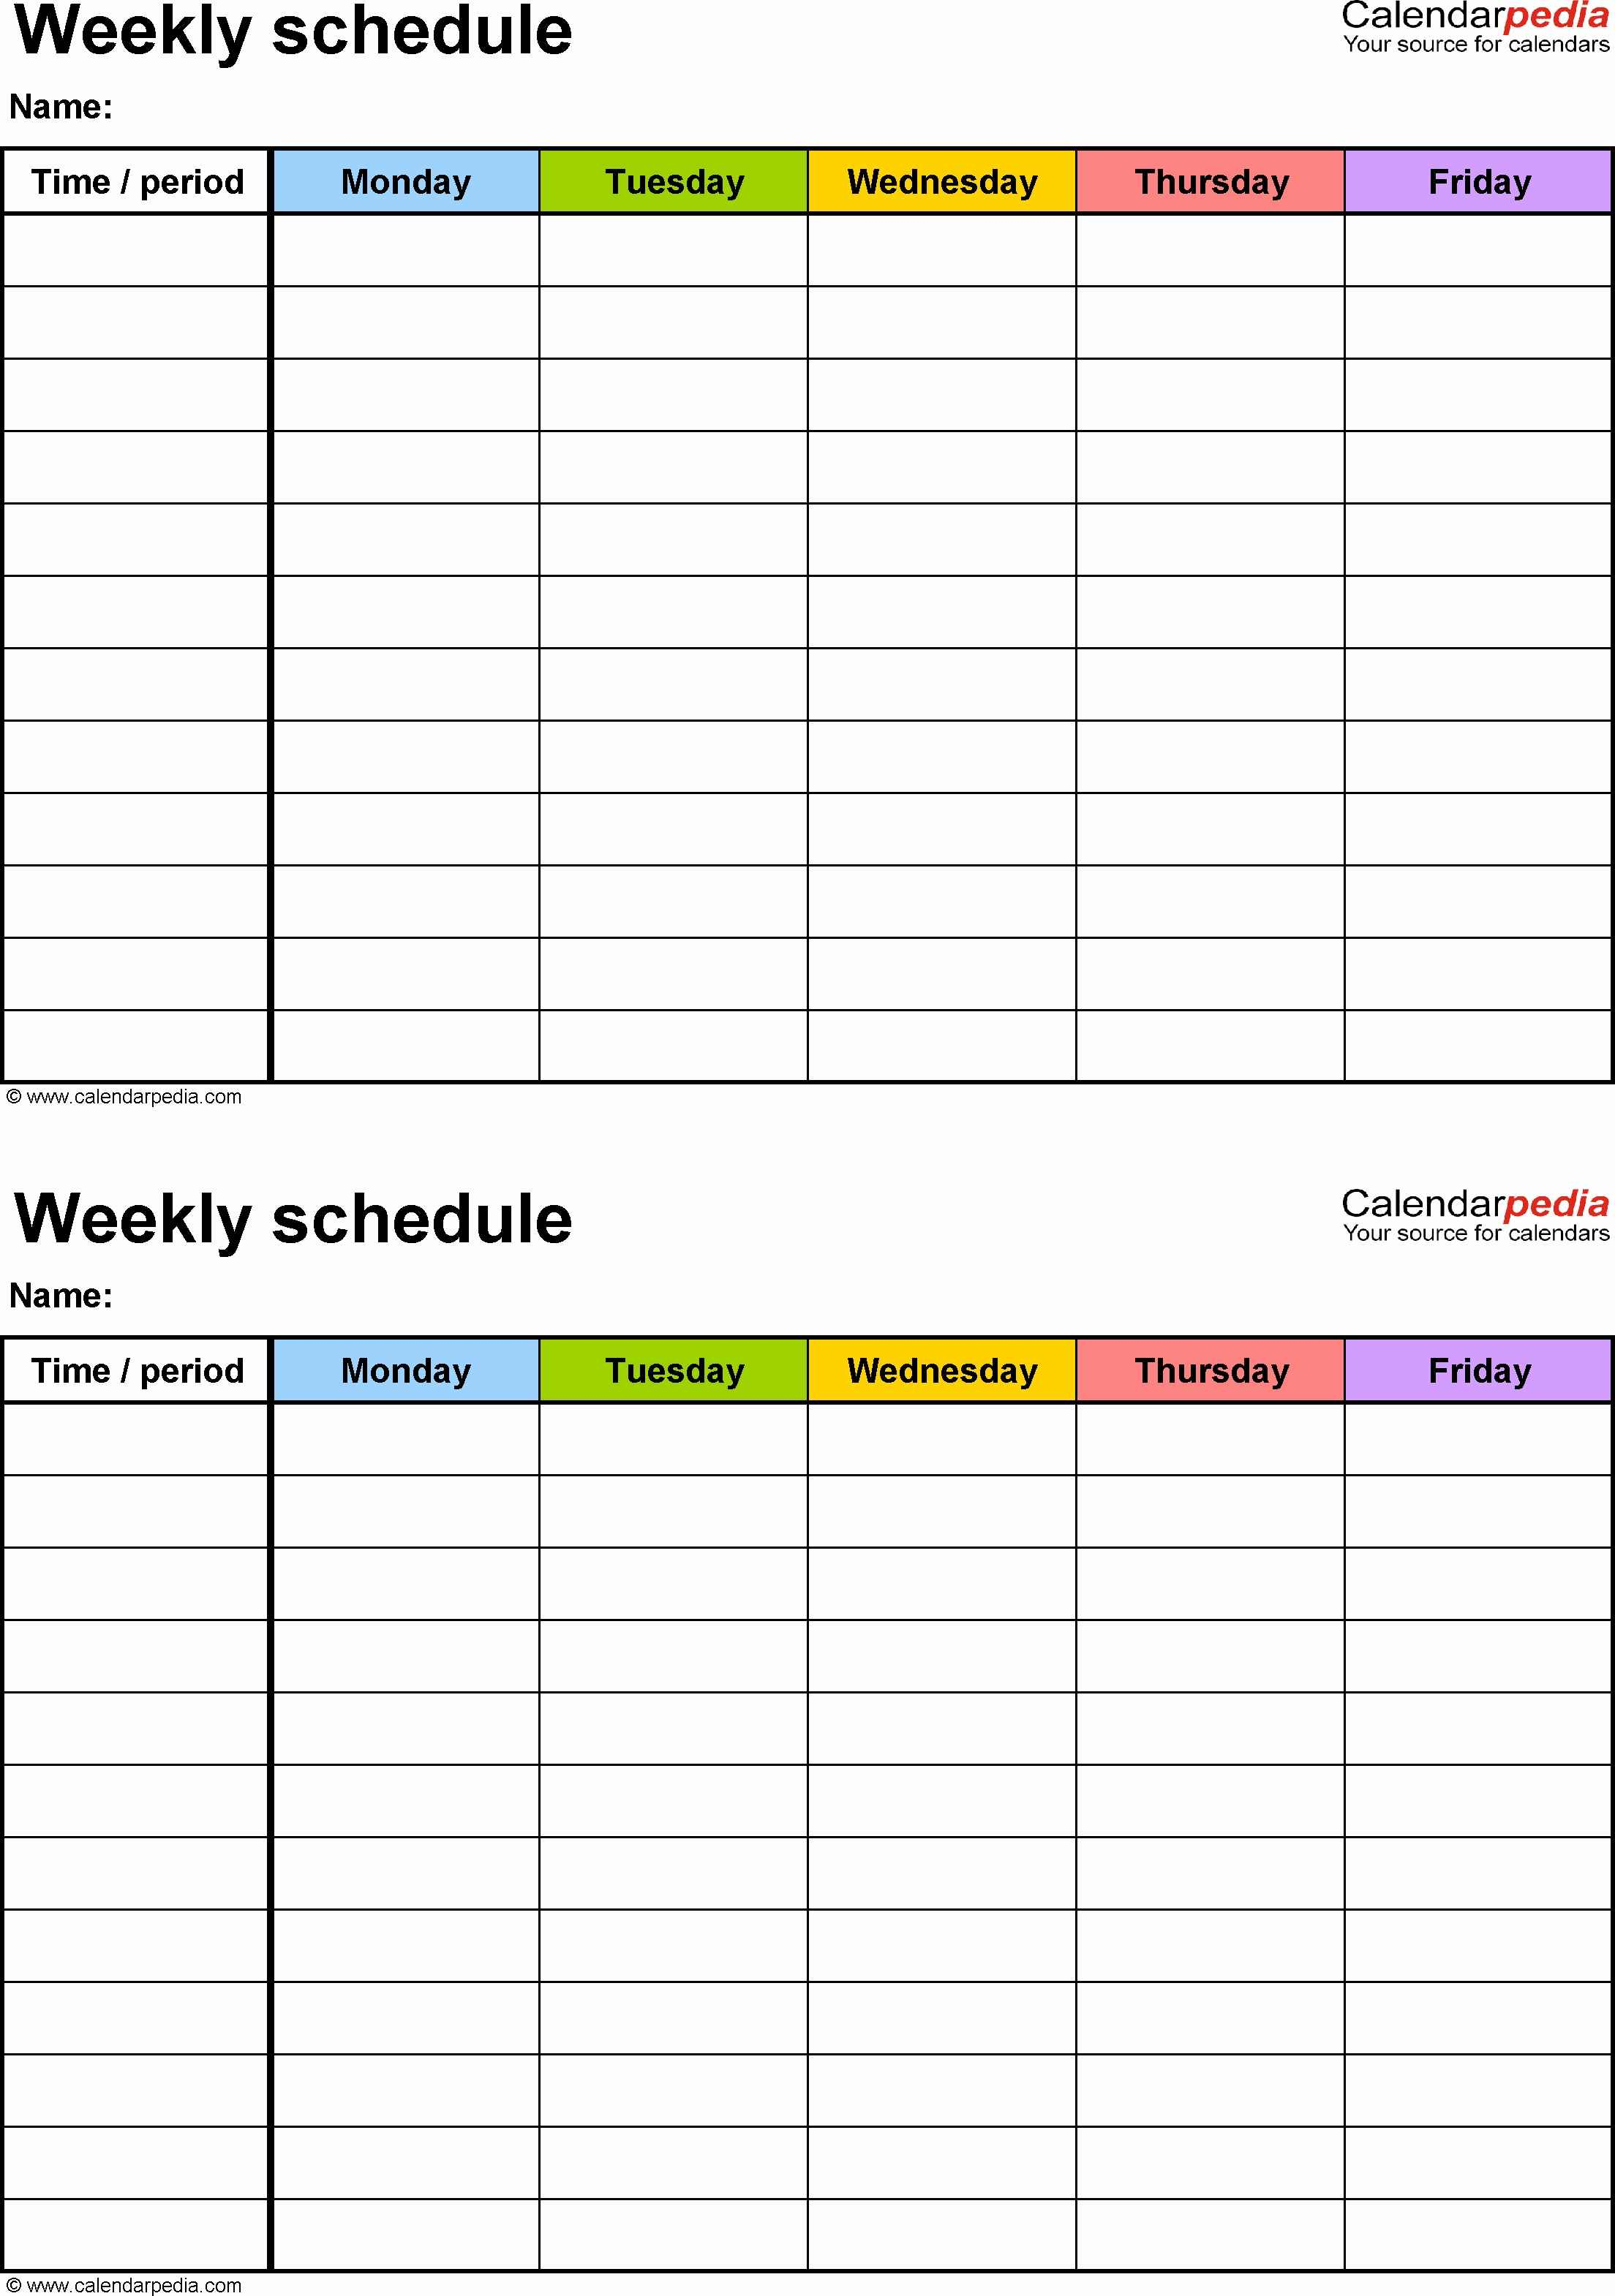 Weekly employee shift schedule